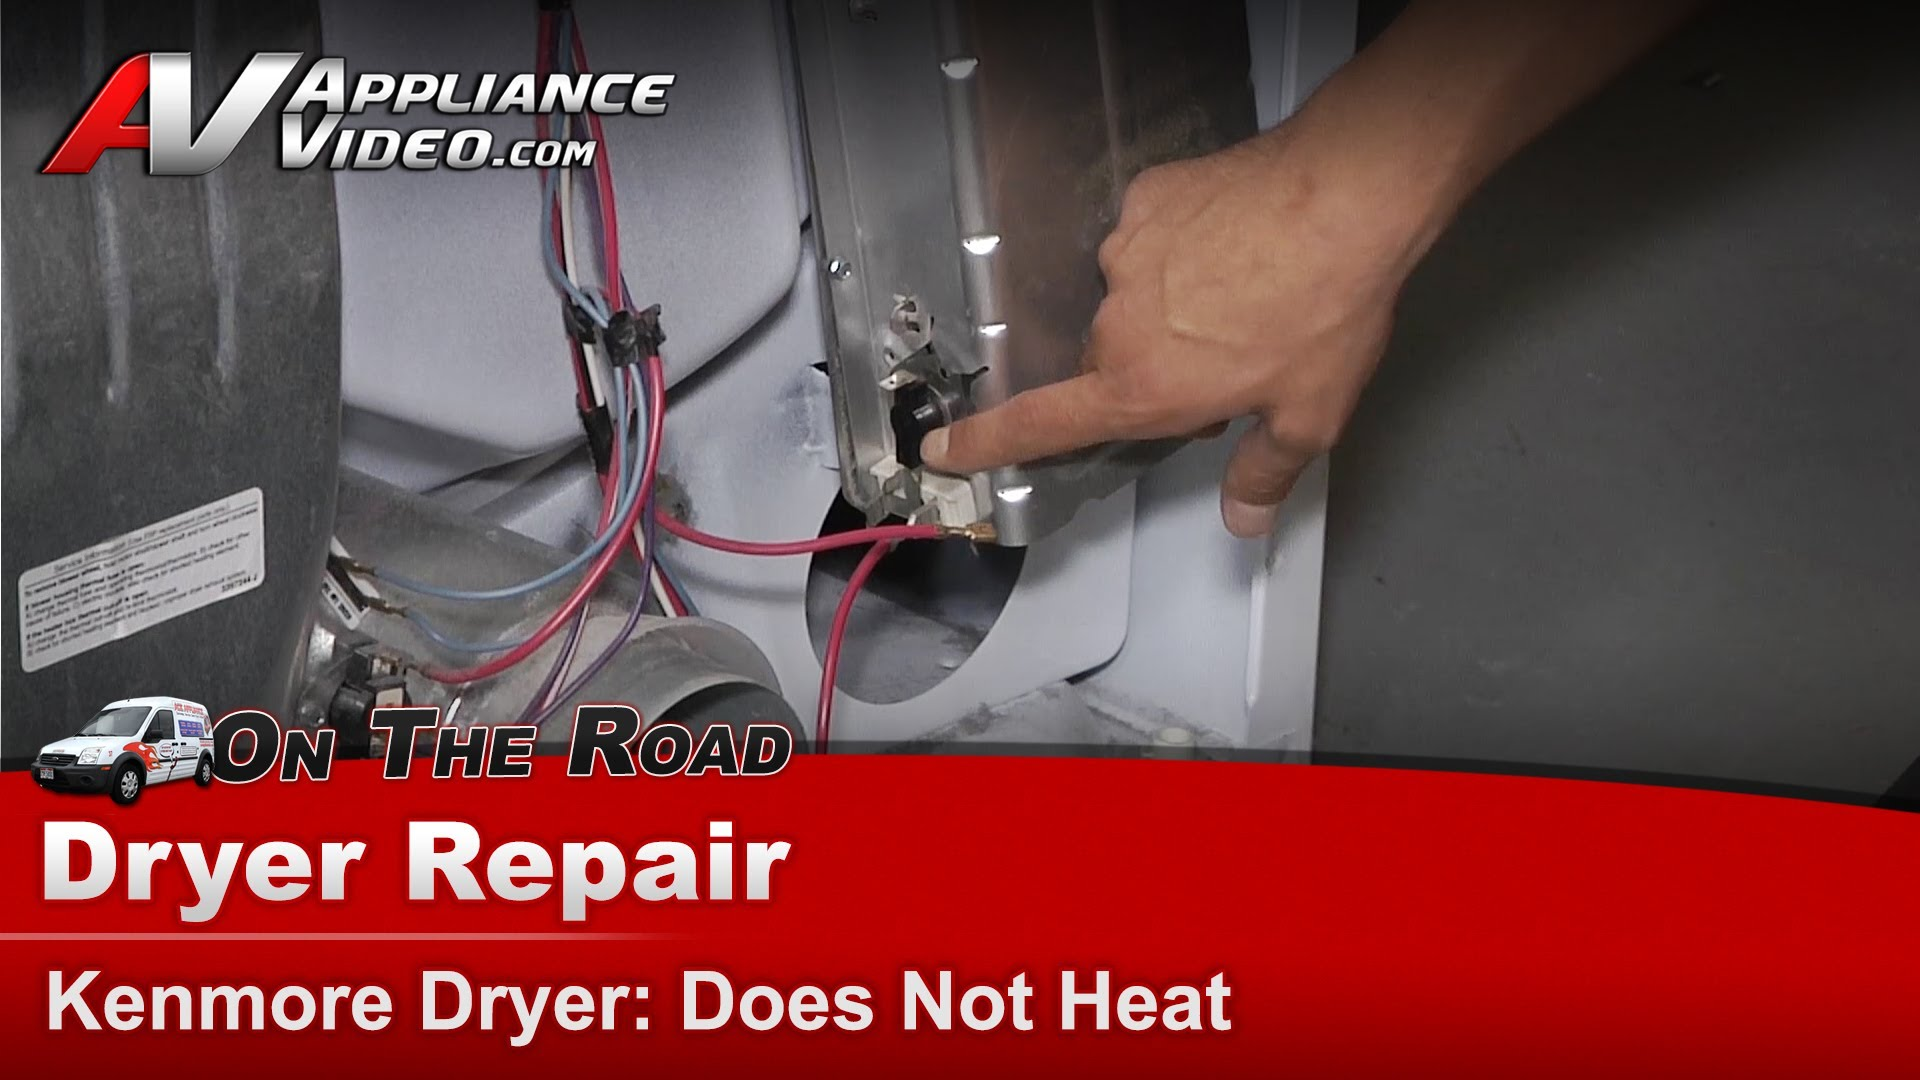 Kenmore Refrigerator Repair >> Kenmore 11066842500 Dryer Diagnostic and Repair – Does not heat – Element | Appliance Video